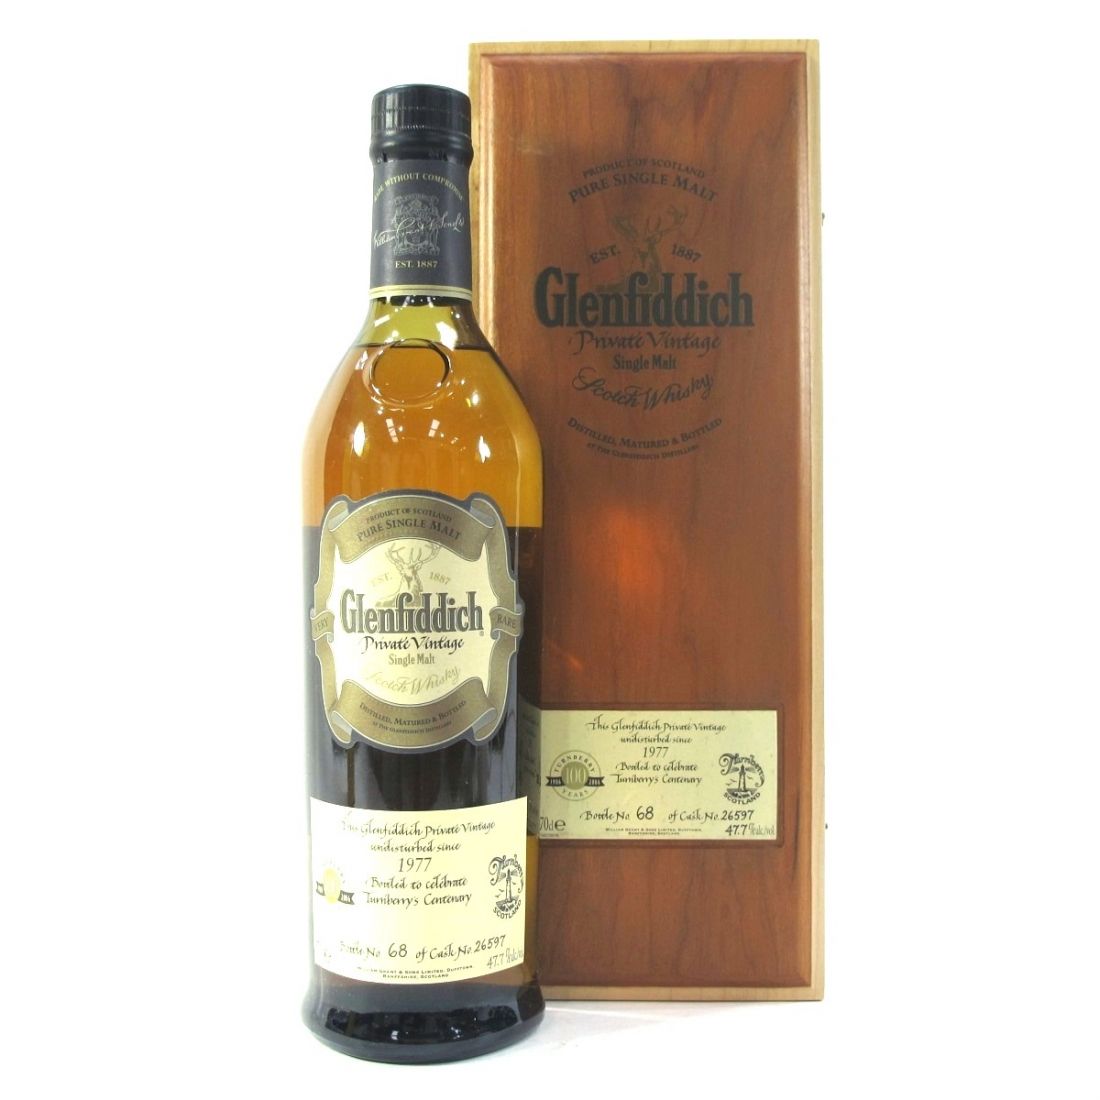 Glenfiddich 1977 Private Vintage Turnberry's Centenary